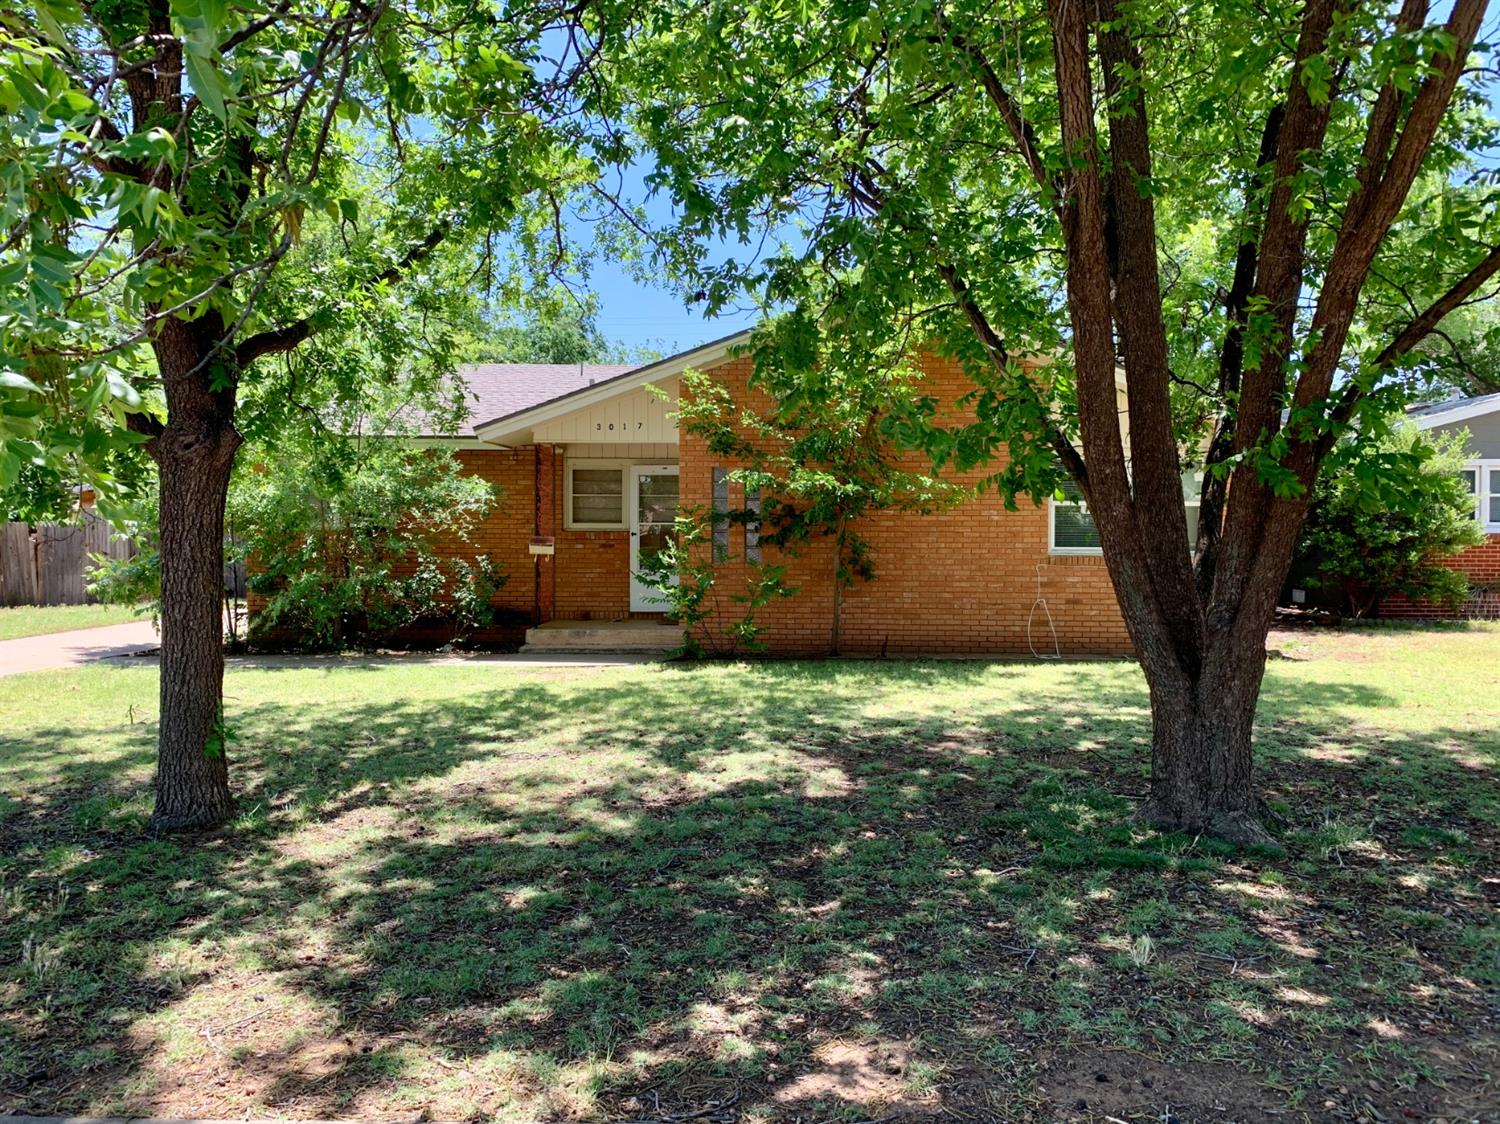 Great 4 bed 2 1/2 bath home that caters to investors, TTU parents. You don't want to miss out on this house!